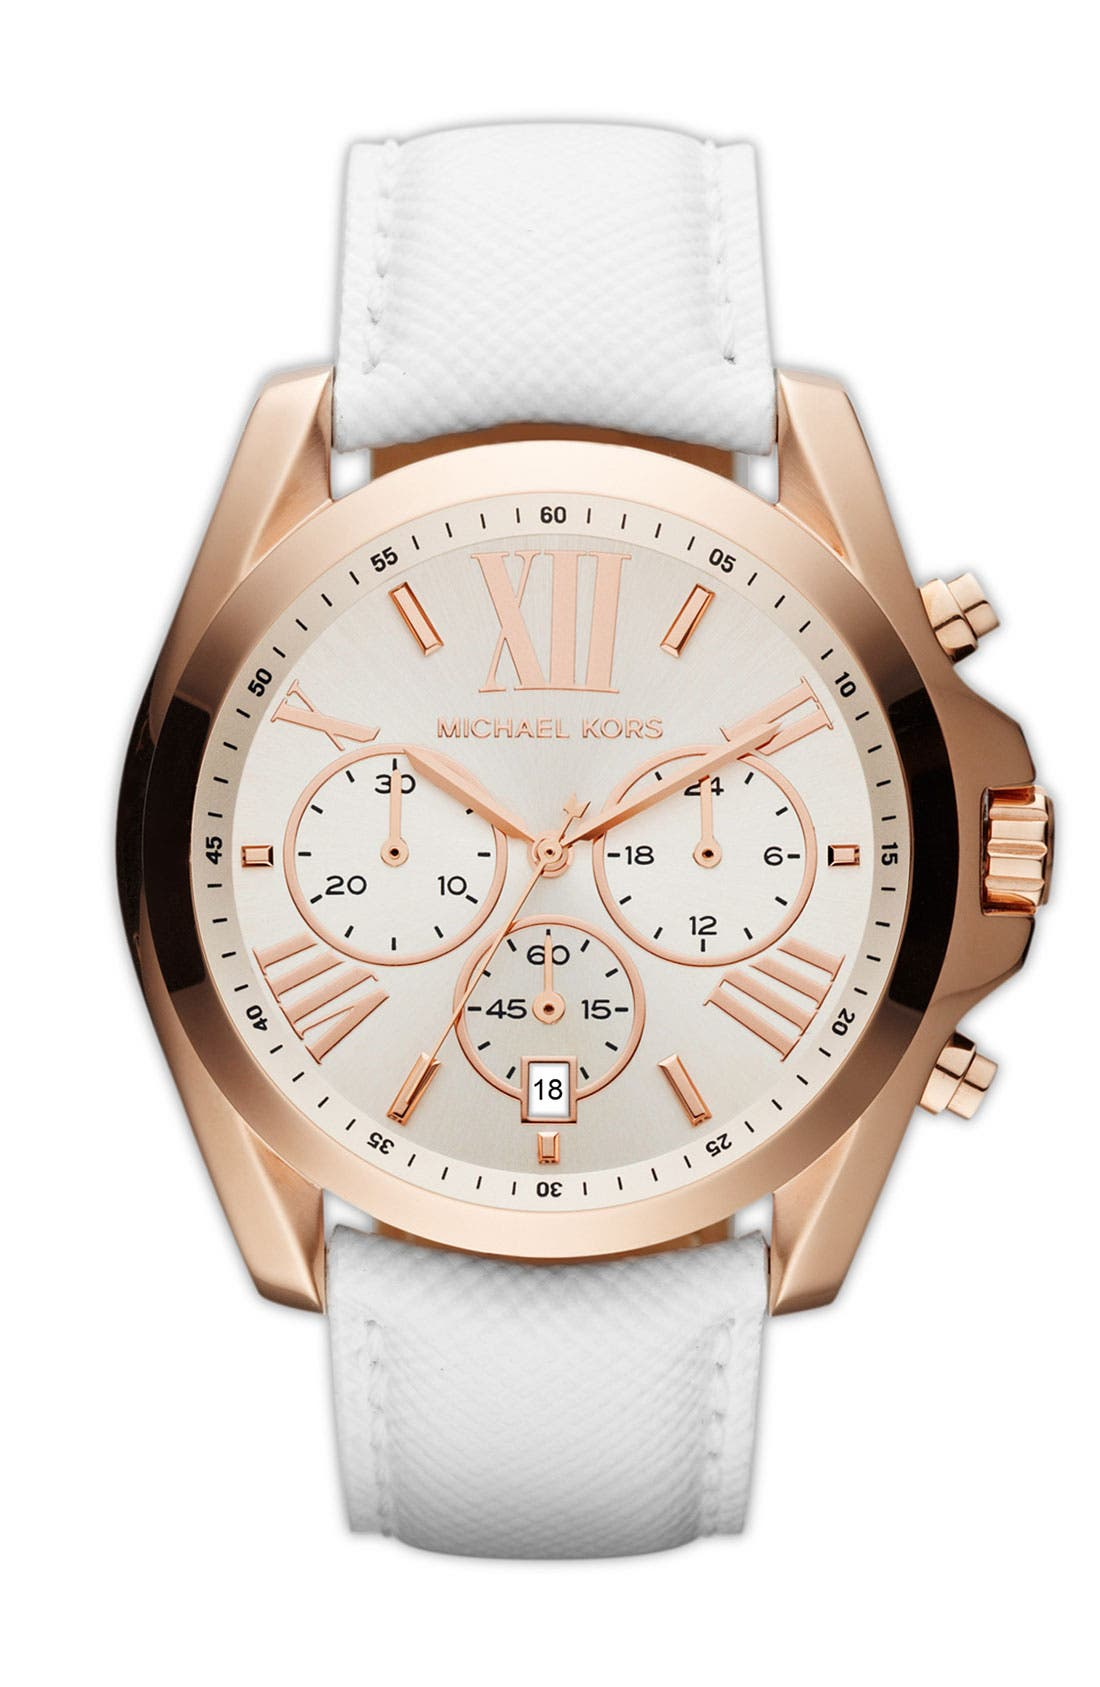 Main Image - Michael Kors 'Bradshaw' Leather Strap Watch